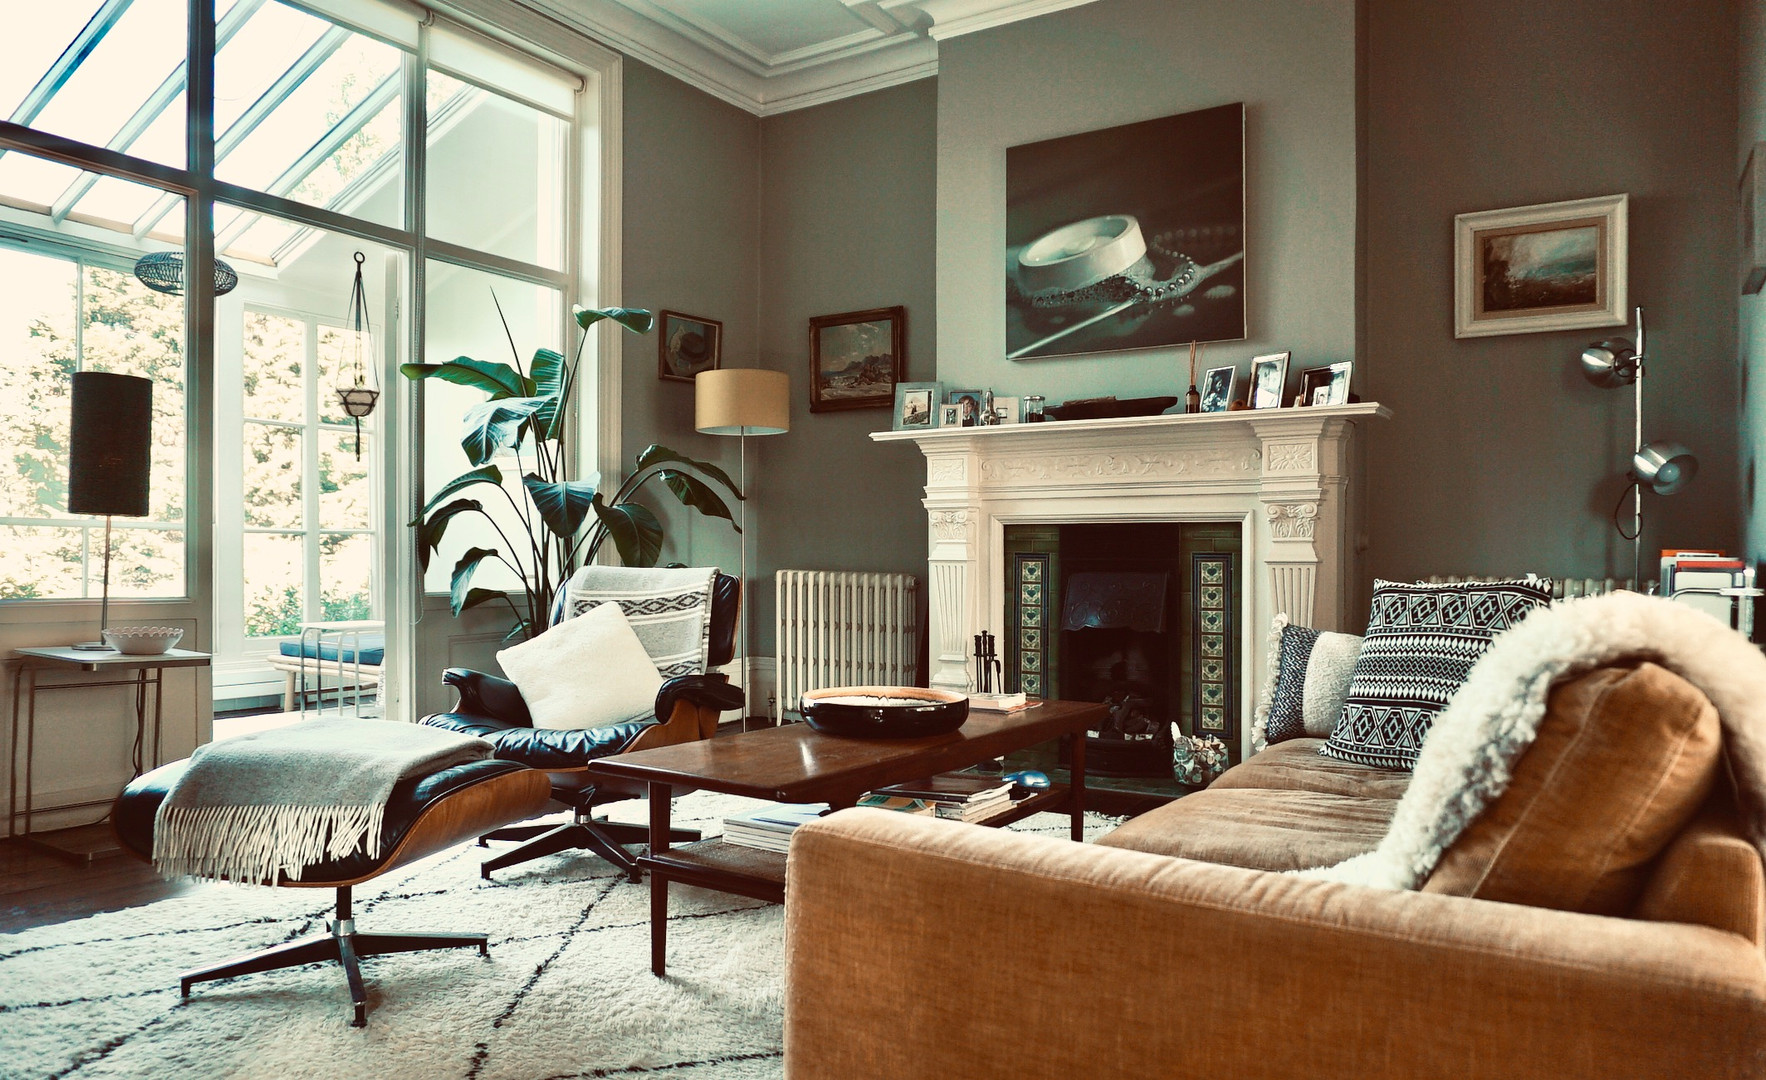 Living room interior in Hardwick White. Sourced period furniture, artwork and soft furnishings.